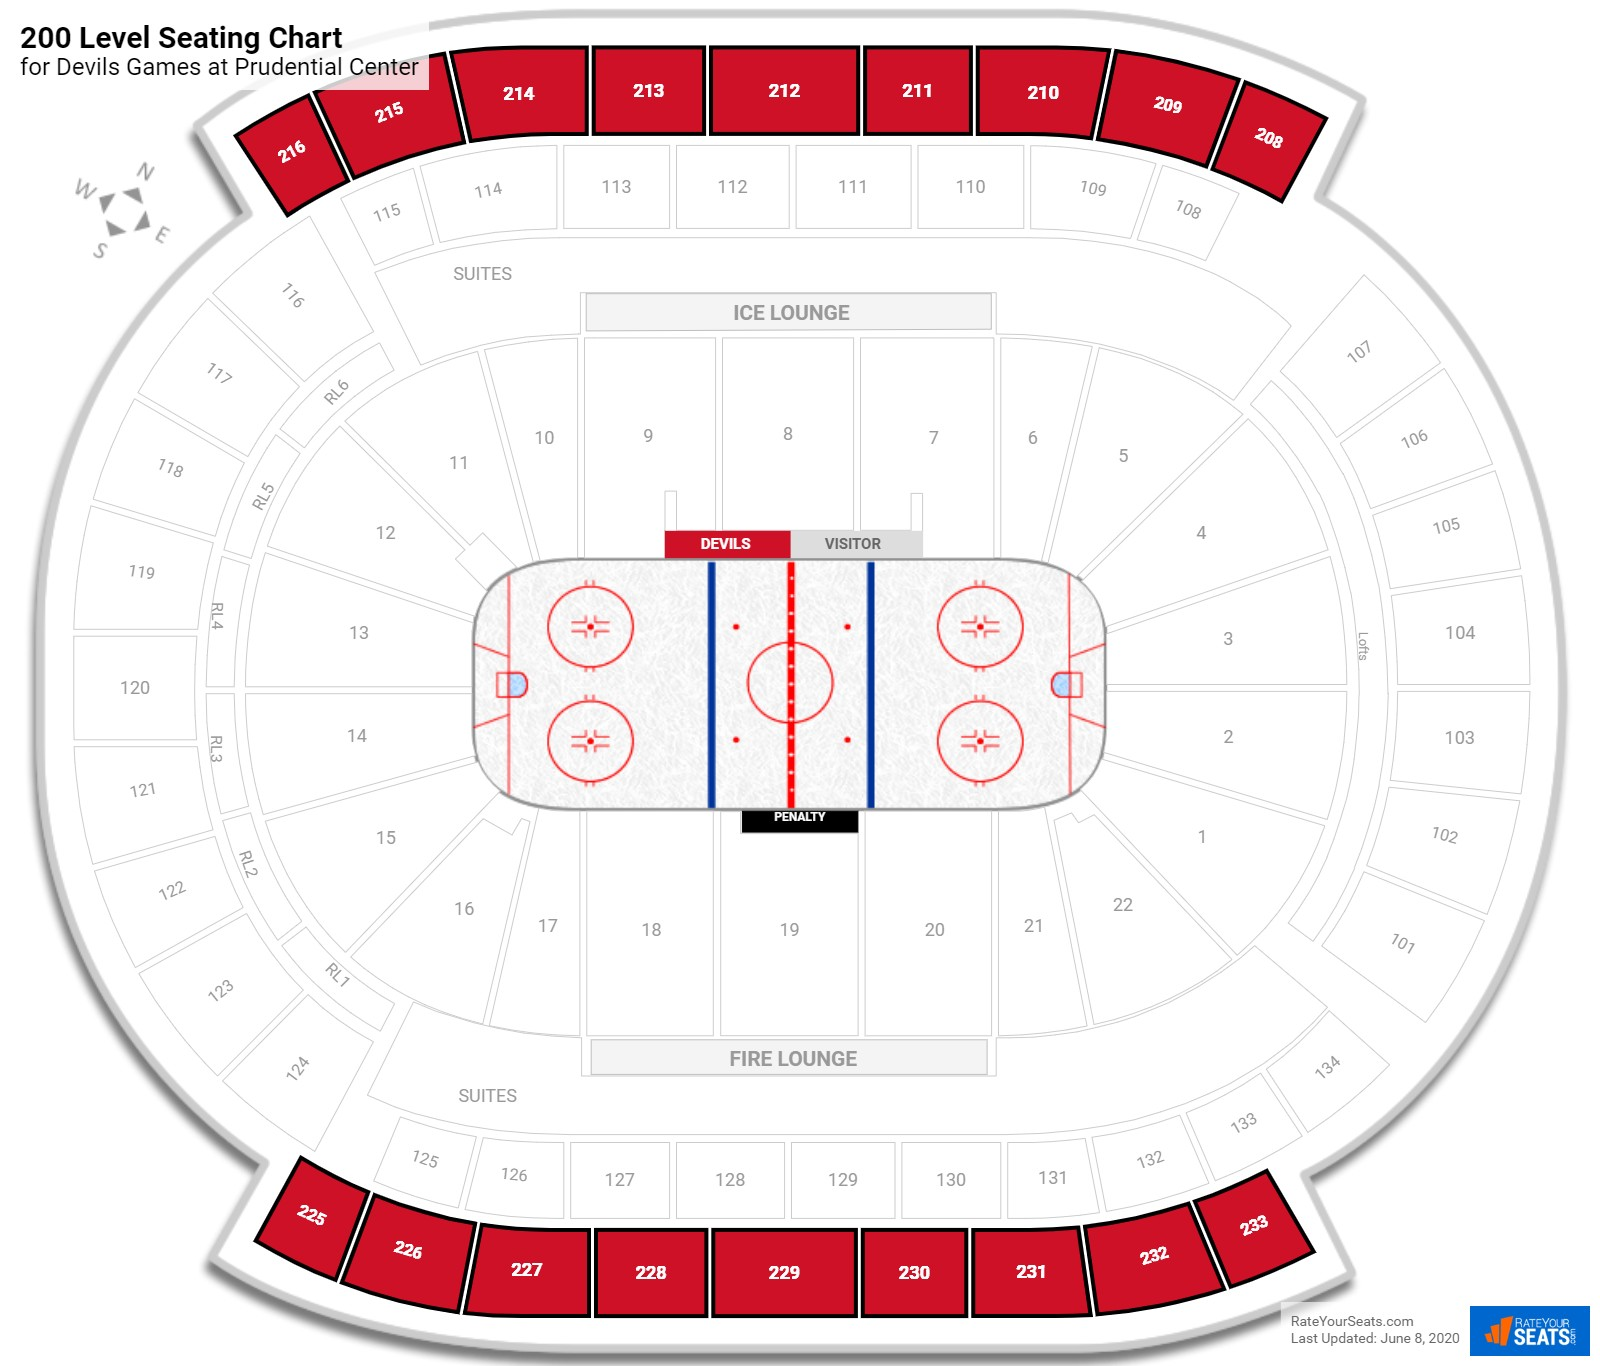 Prudential Center 200 Level Side seating chart